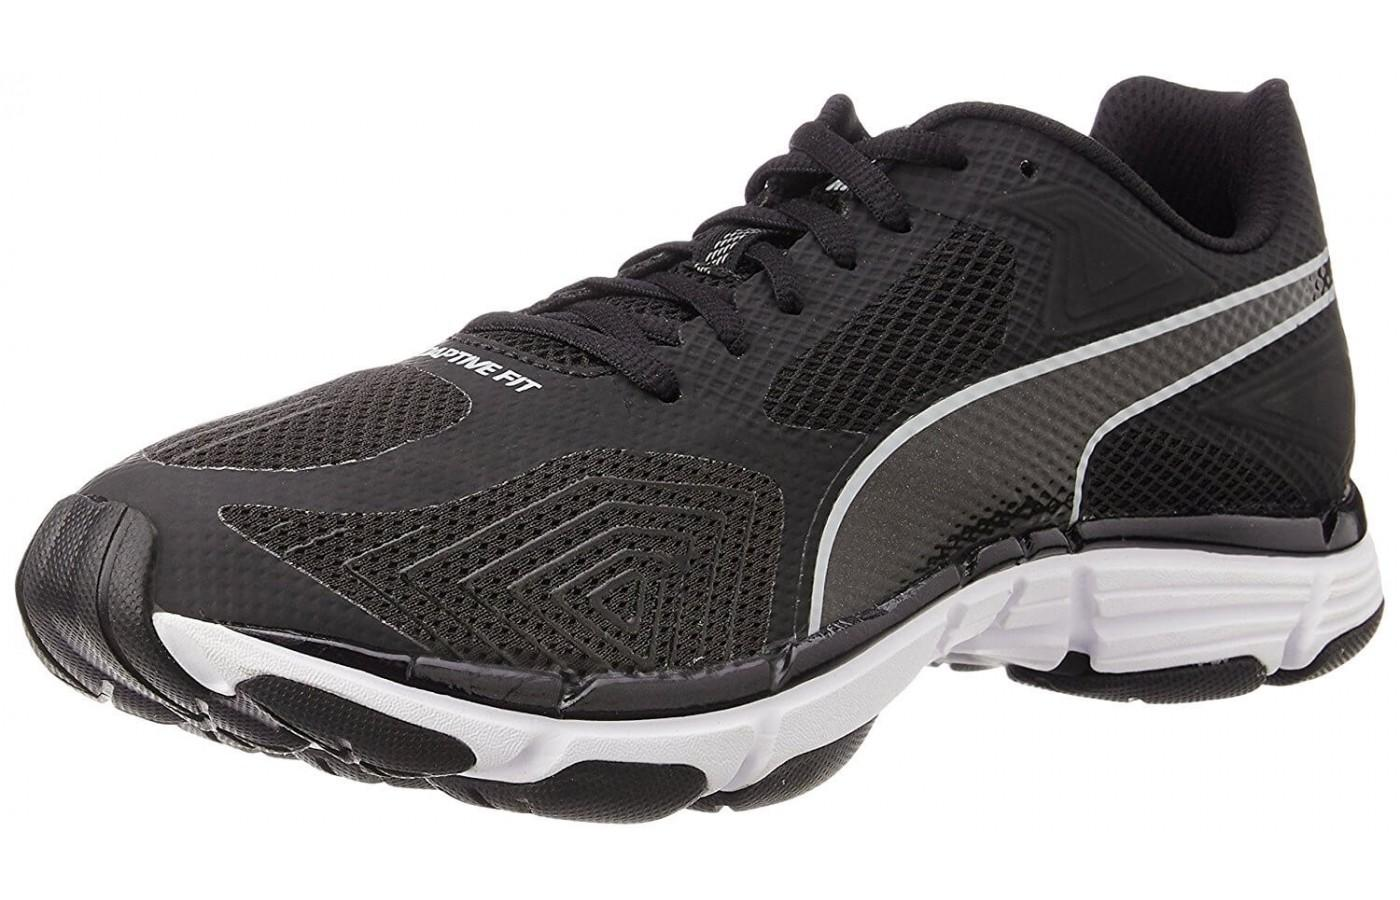 the Puma Mobium Ride v2 is a comfortable and stylish trainer